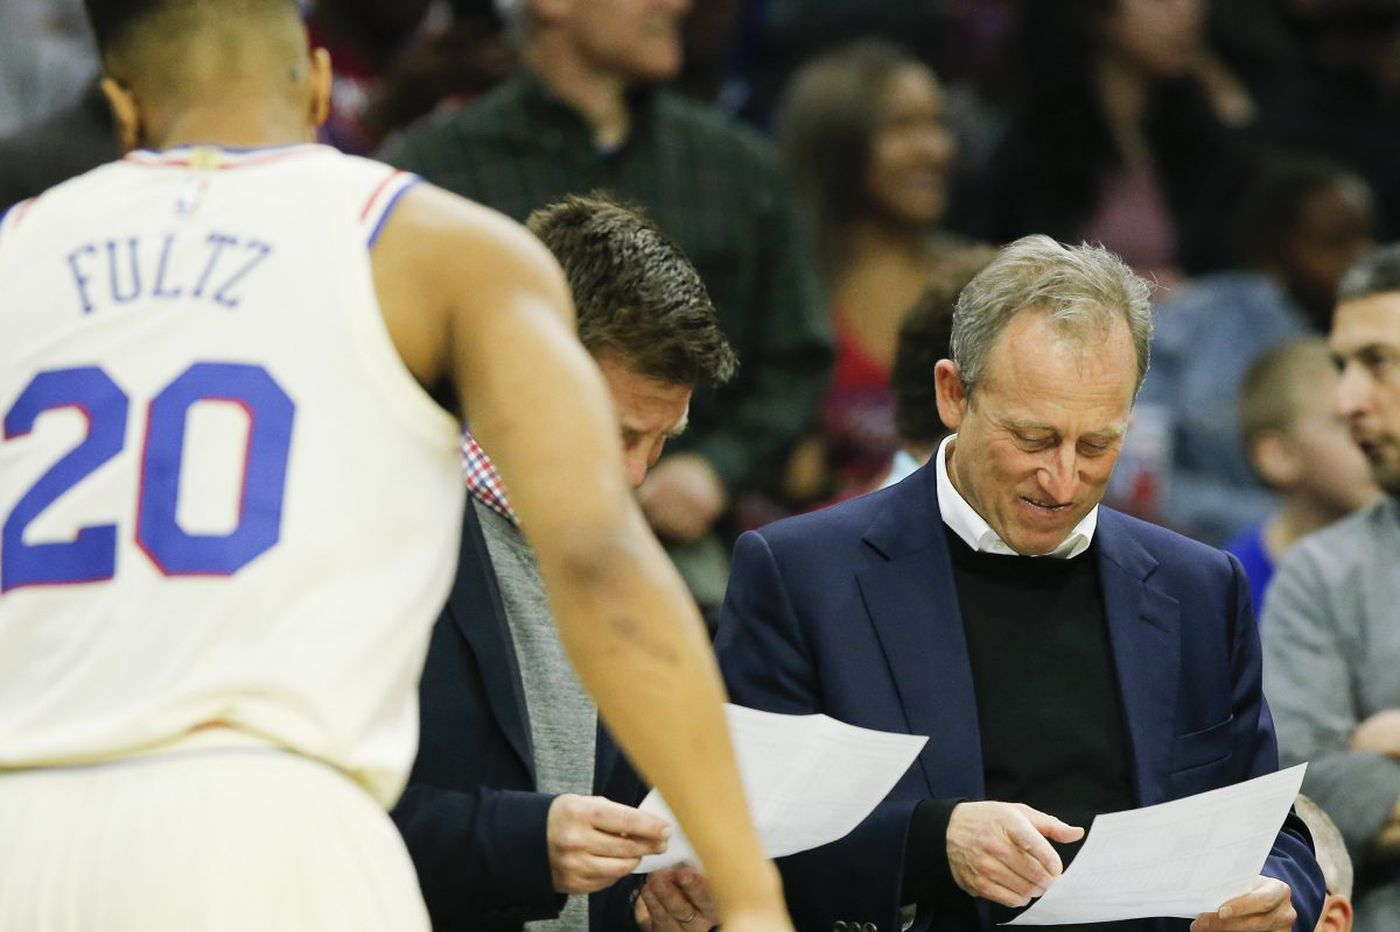 Q&A with Sixers' owner Josh Harris: 'I'm greedy, I want to win an NBA championship'